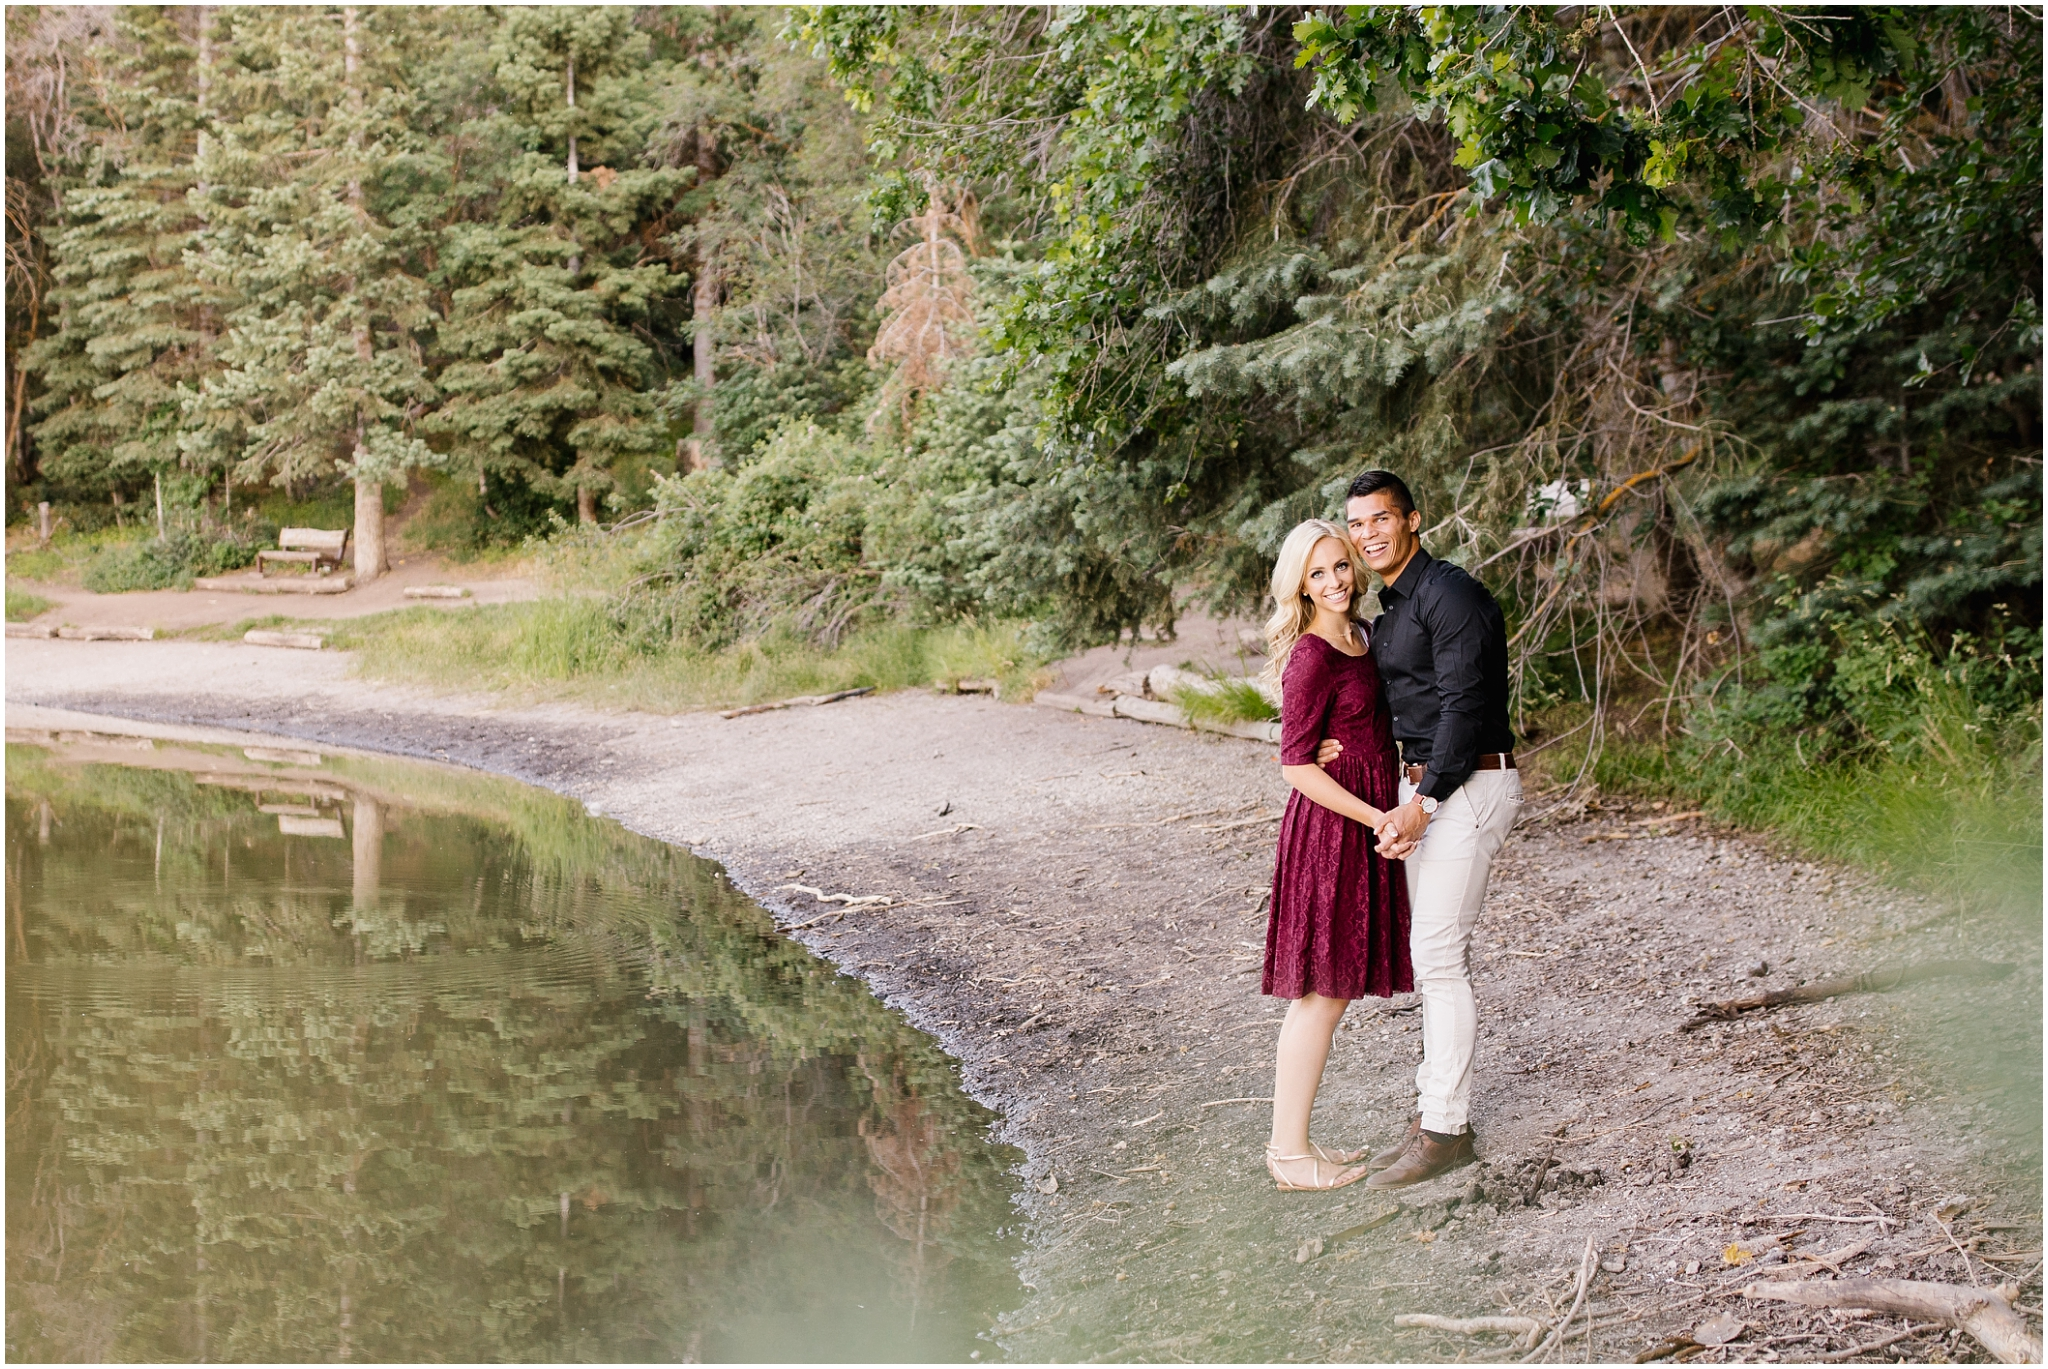 HCengagements-69_Lizzie-B-Imagery-Utah-Wedding-Photographer-Central-Utah-Park-City-Salt-Lake-City-Payson-Canyon-Engagement-Session.jpg